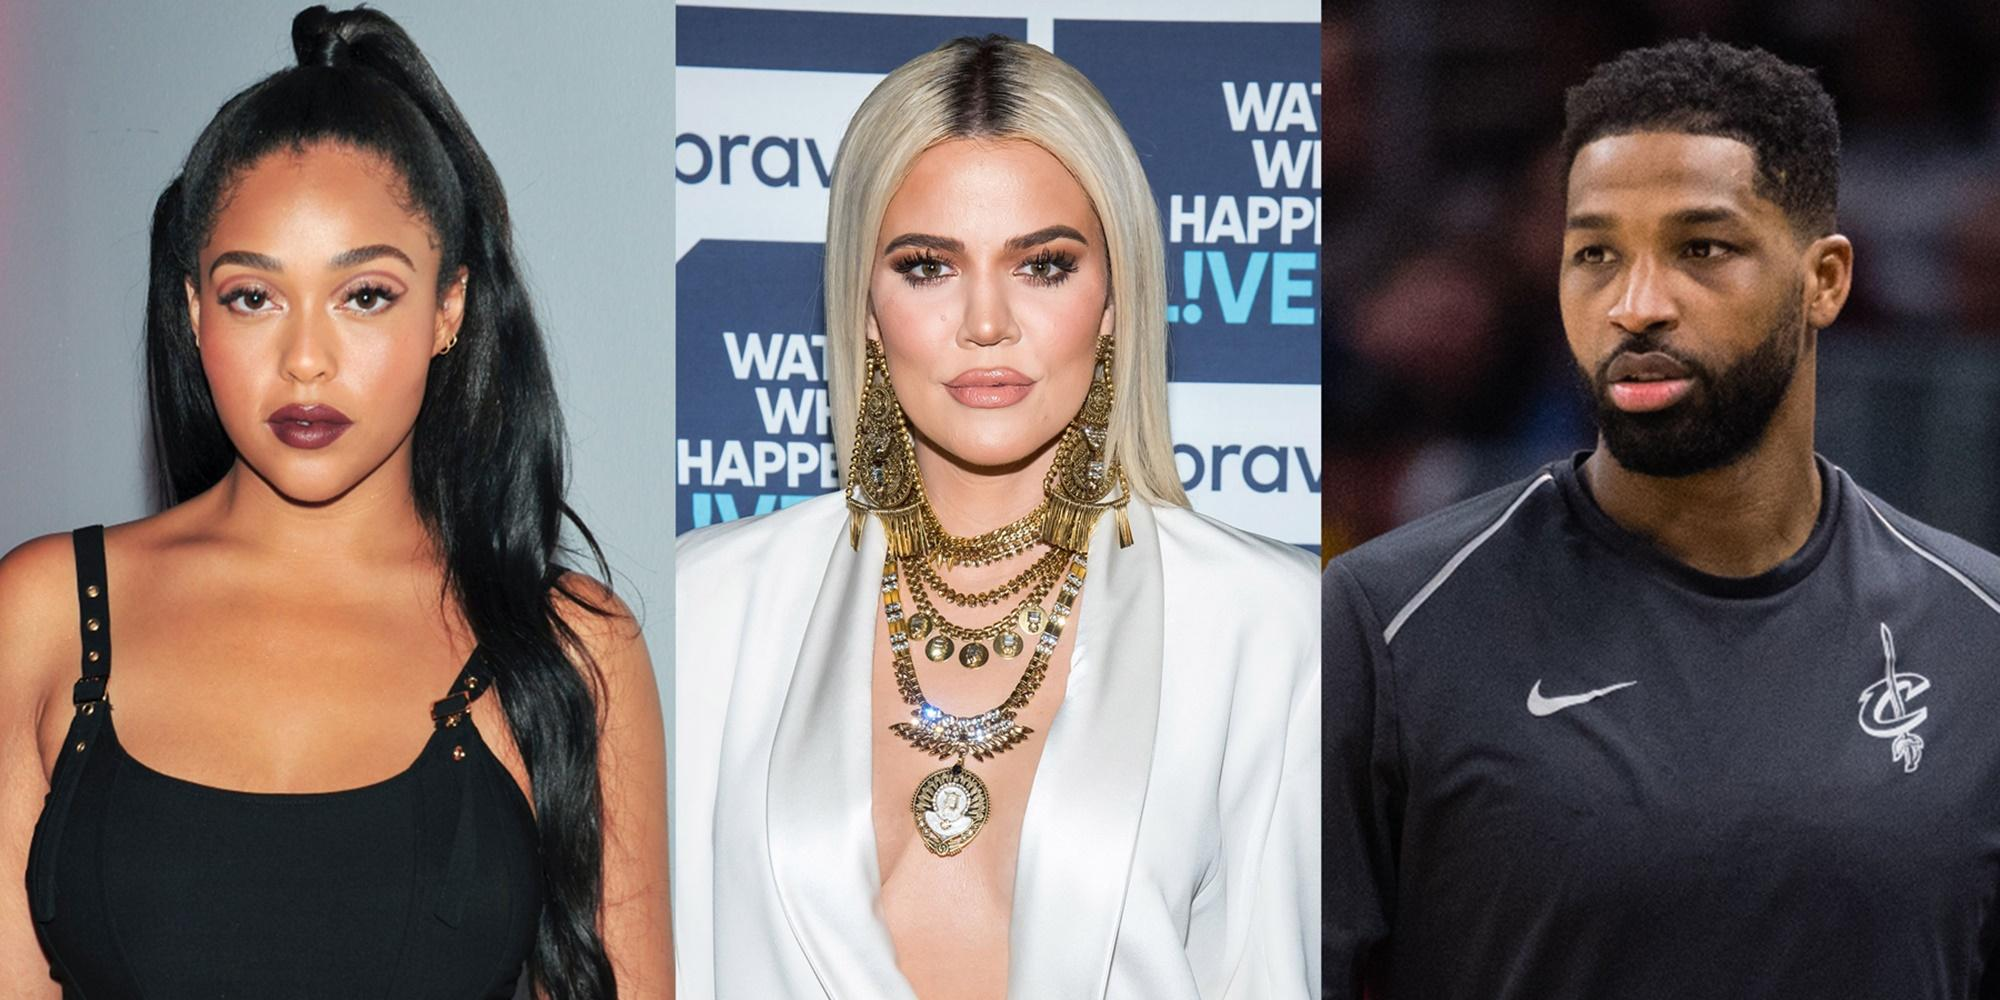 Tristan Thompson Is Featured In Viral Video -- Is He Pulling Another Stunt After Khloe Kardashian Split And Jordyn Woods Cheating Scandal